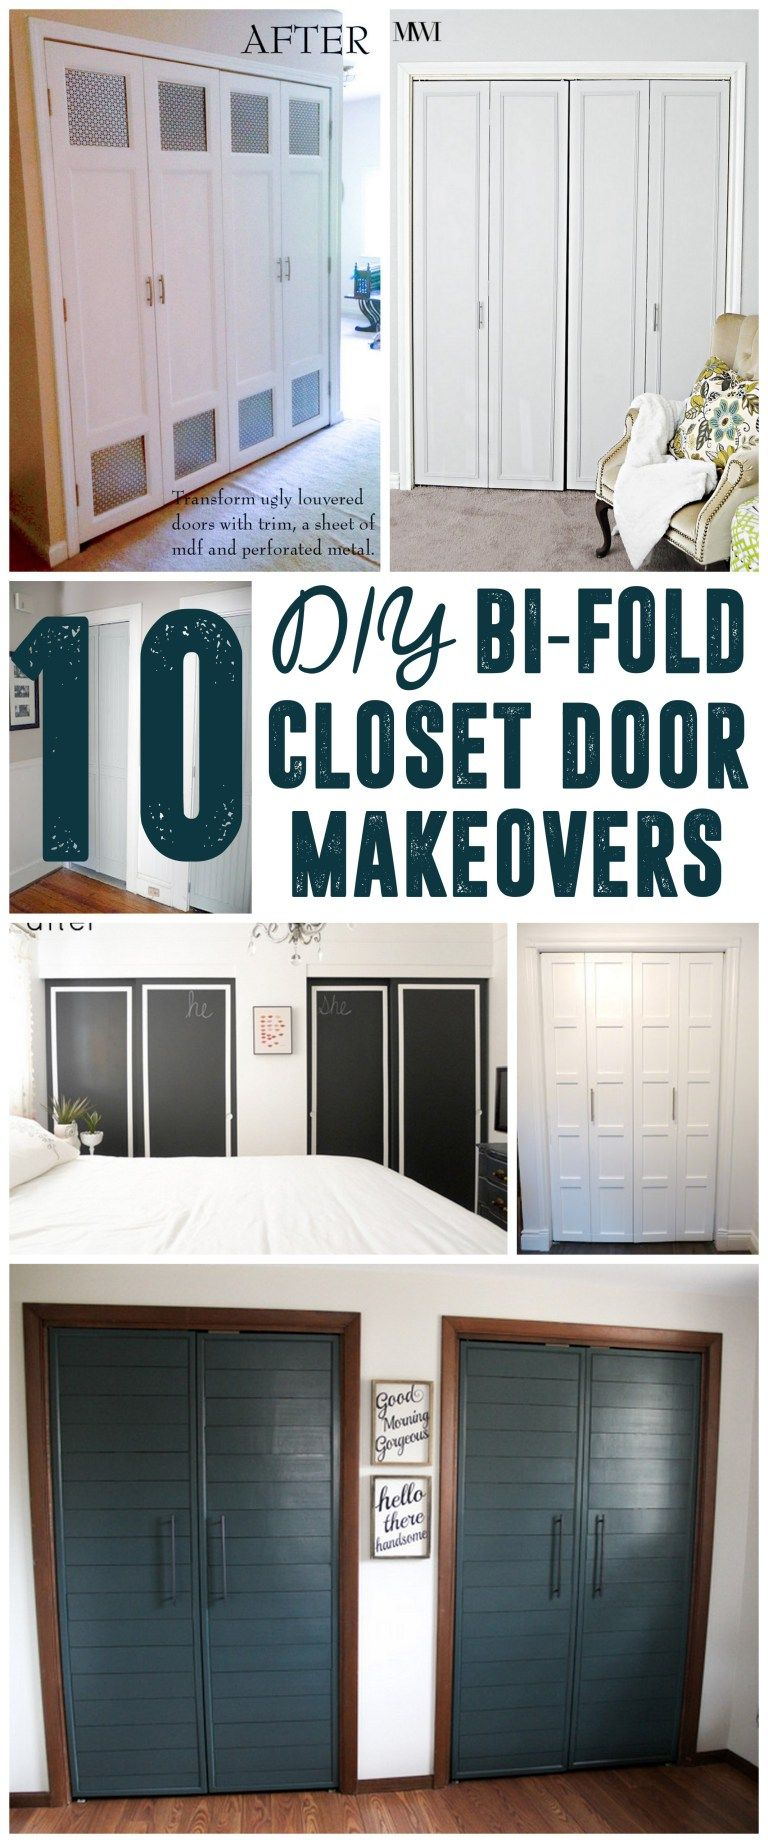 Diy Bi Fold Closet Door Makeovers Home Closets